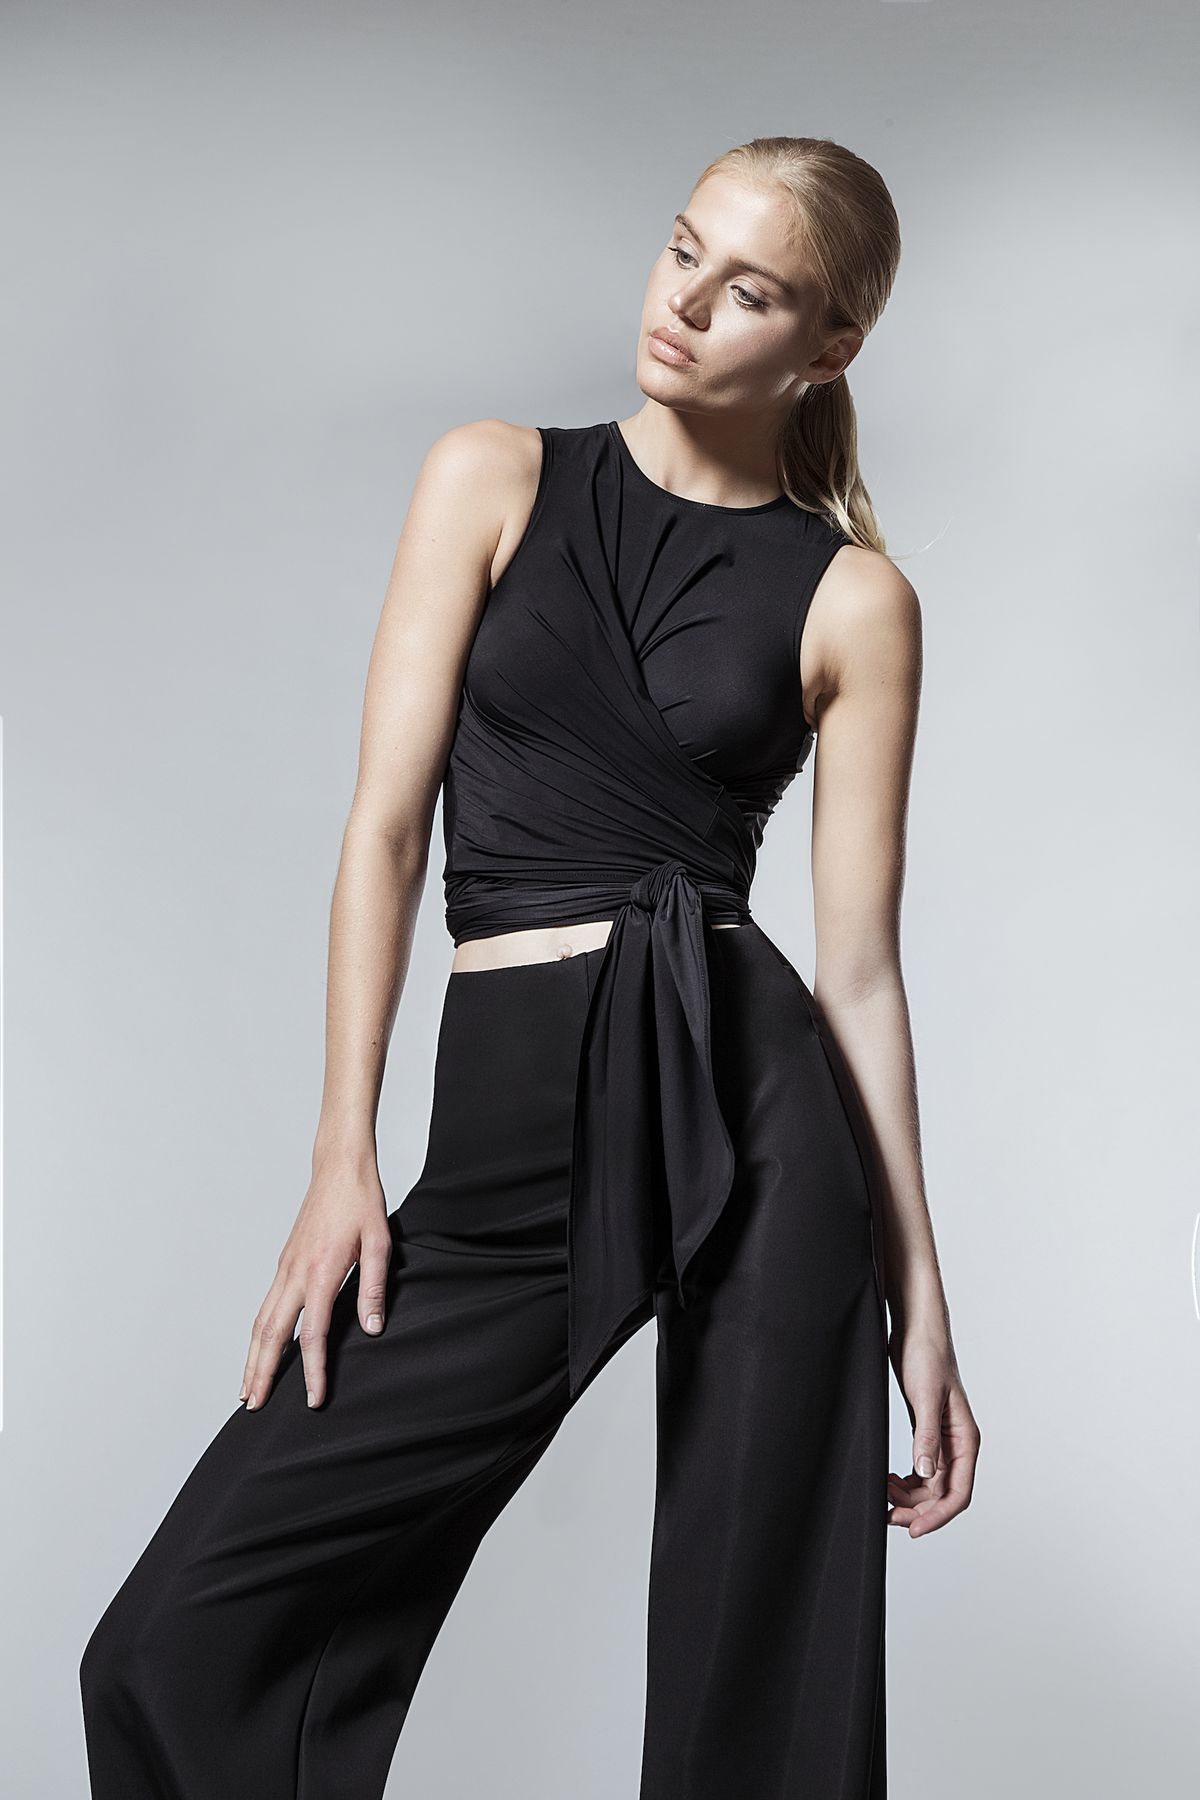 A model wearing black pants and a black tank top